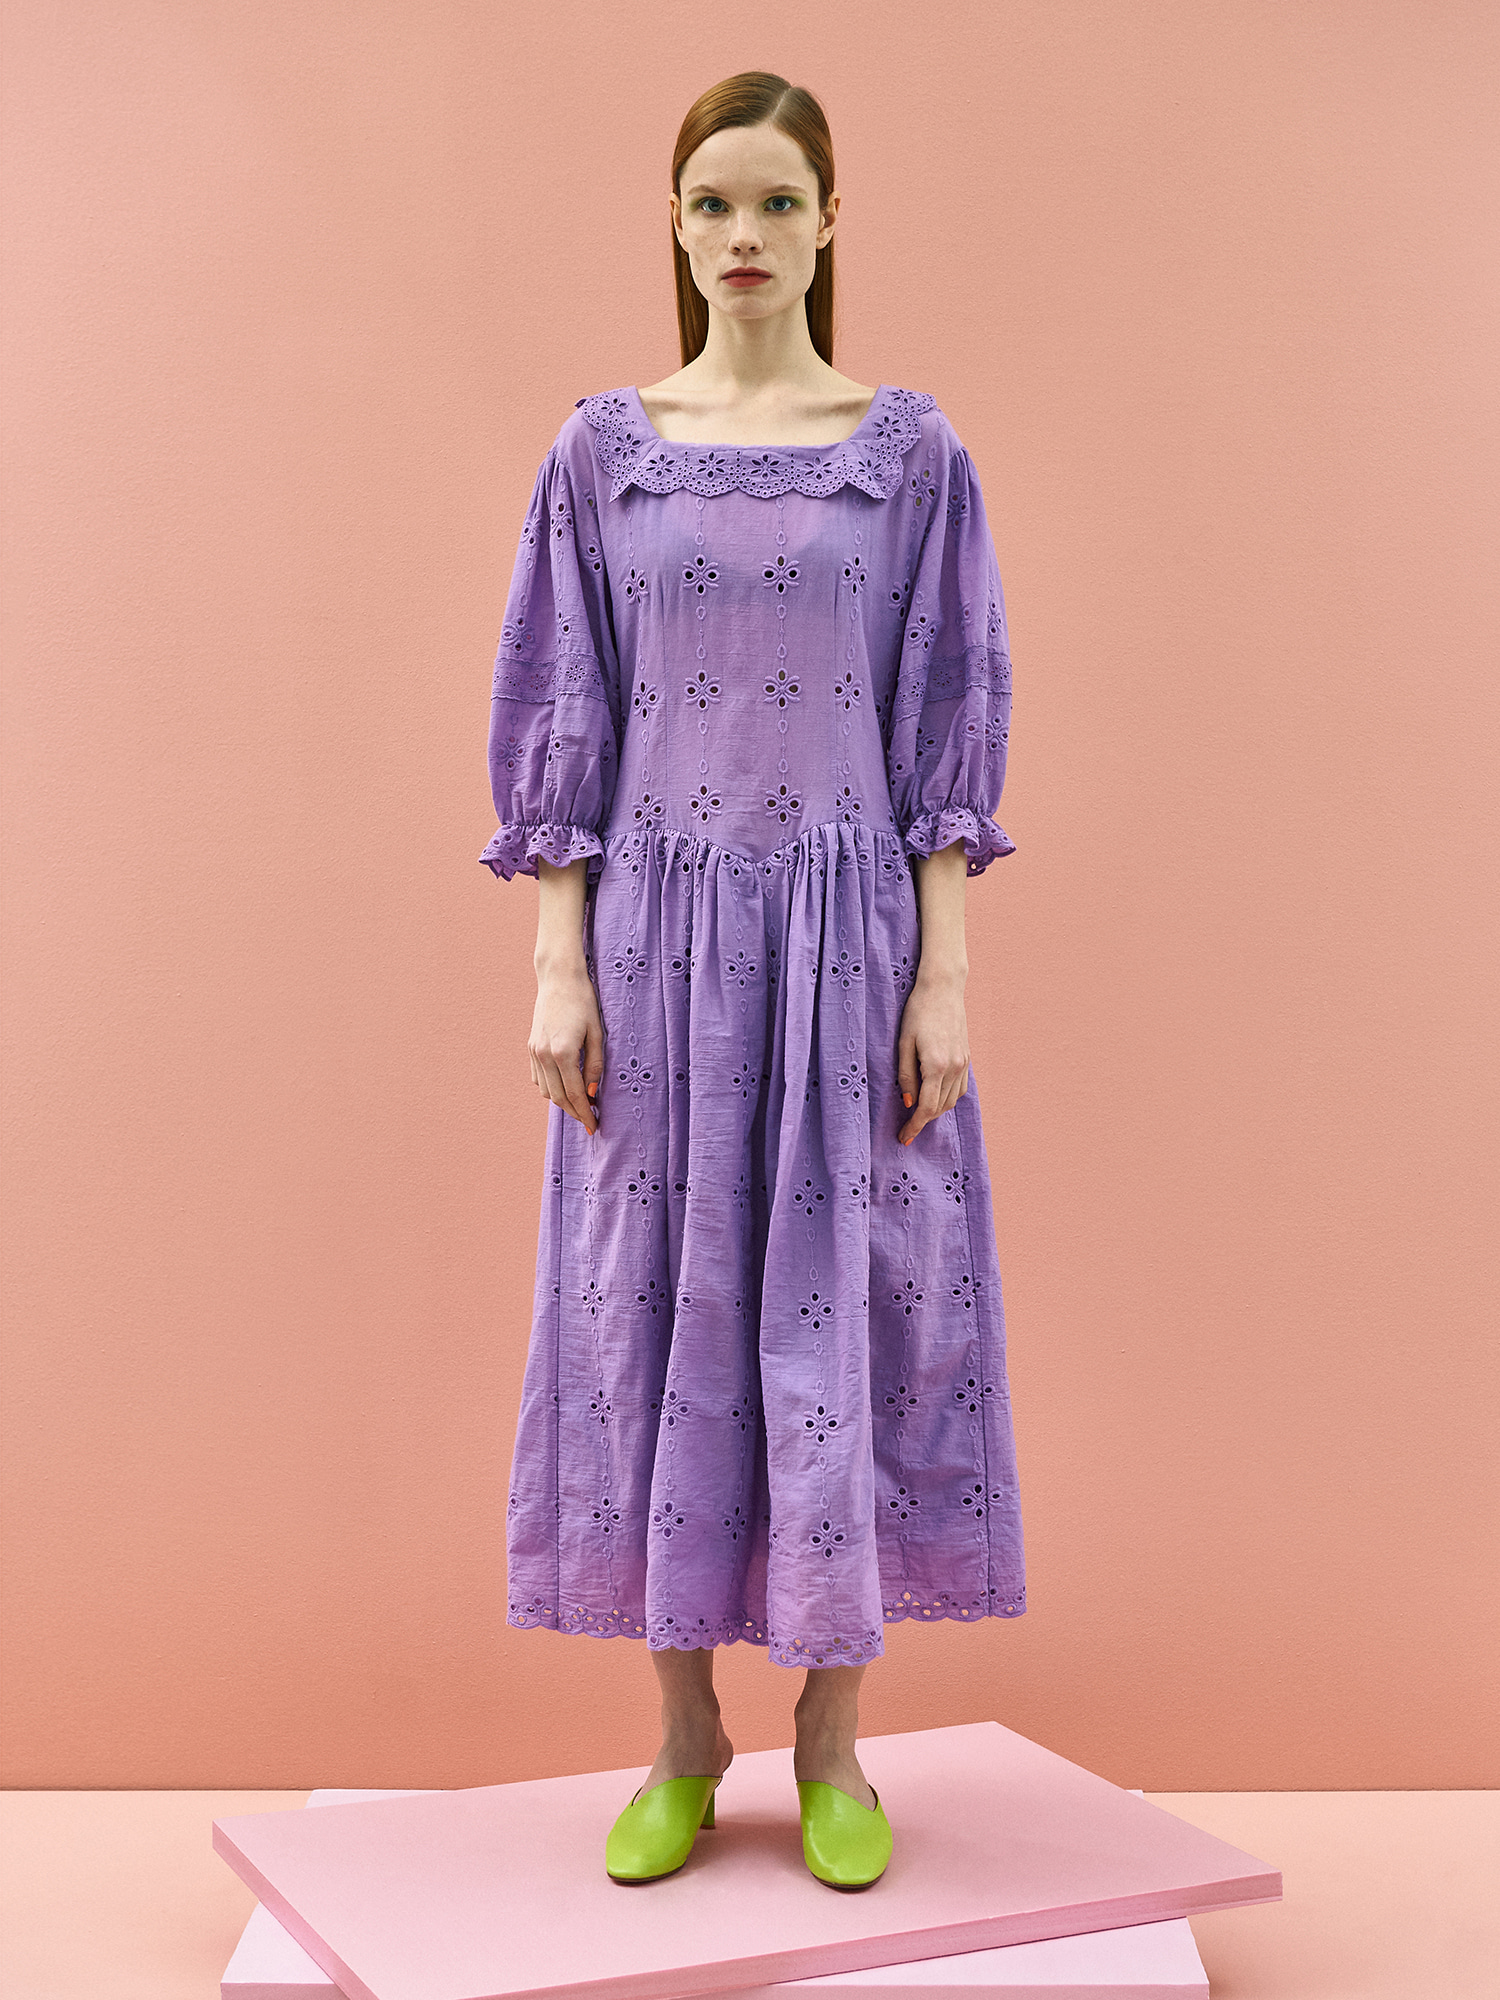 [SUMMER BIG SALE]Girlish Lace Cotton Dress in Purple